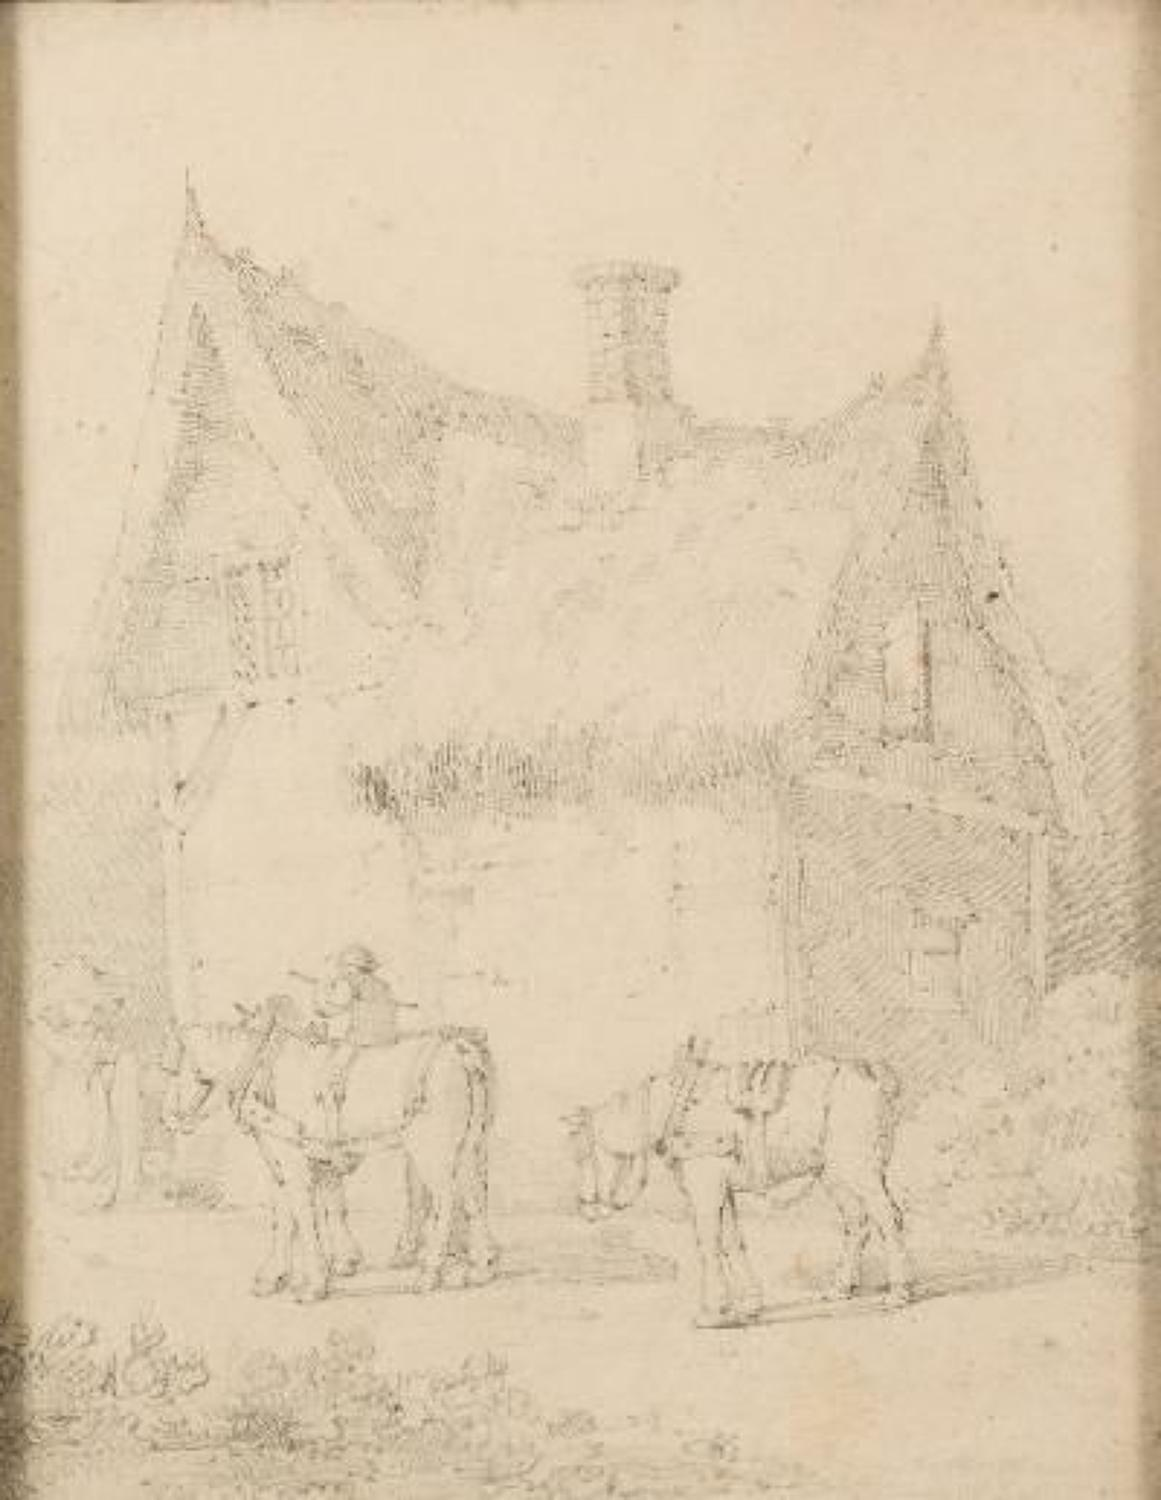 A pencil drawing of a farm